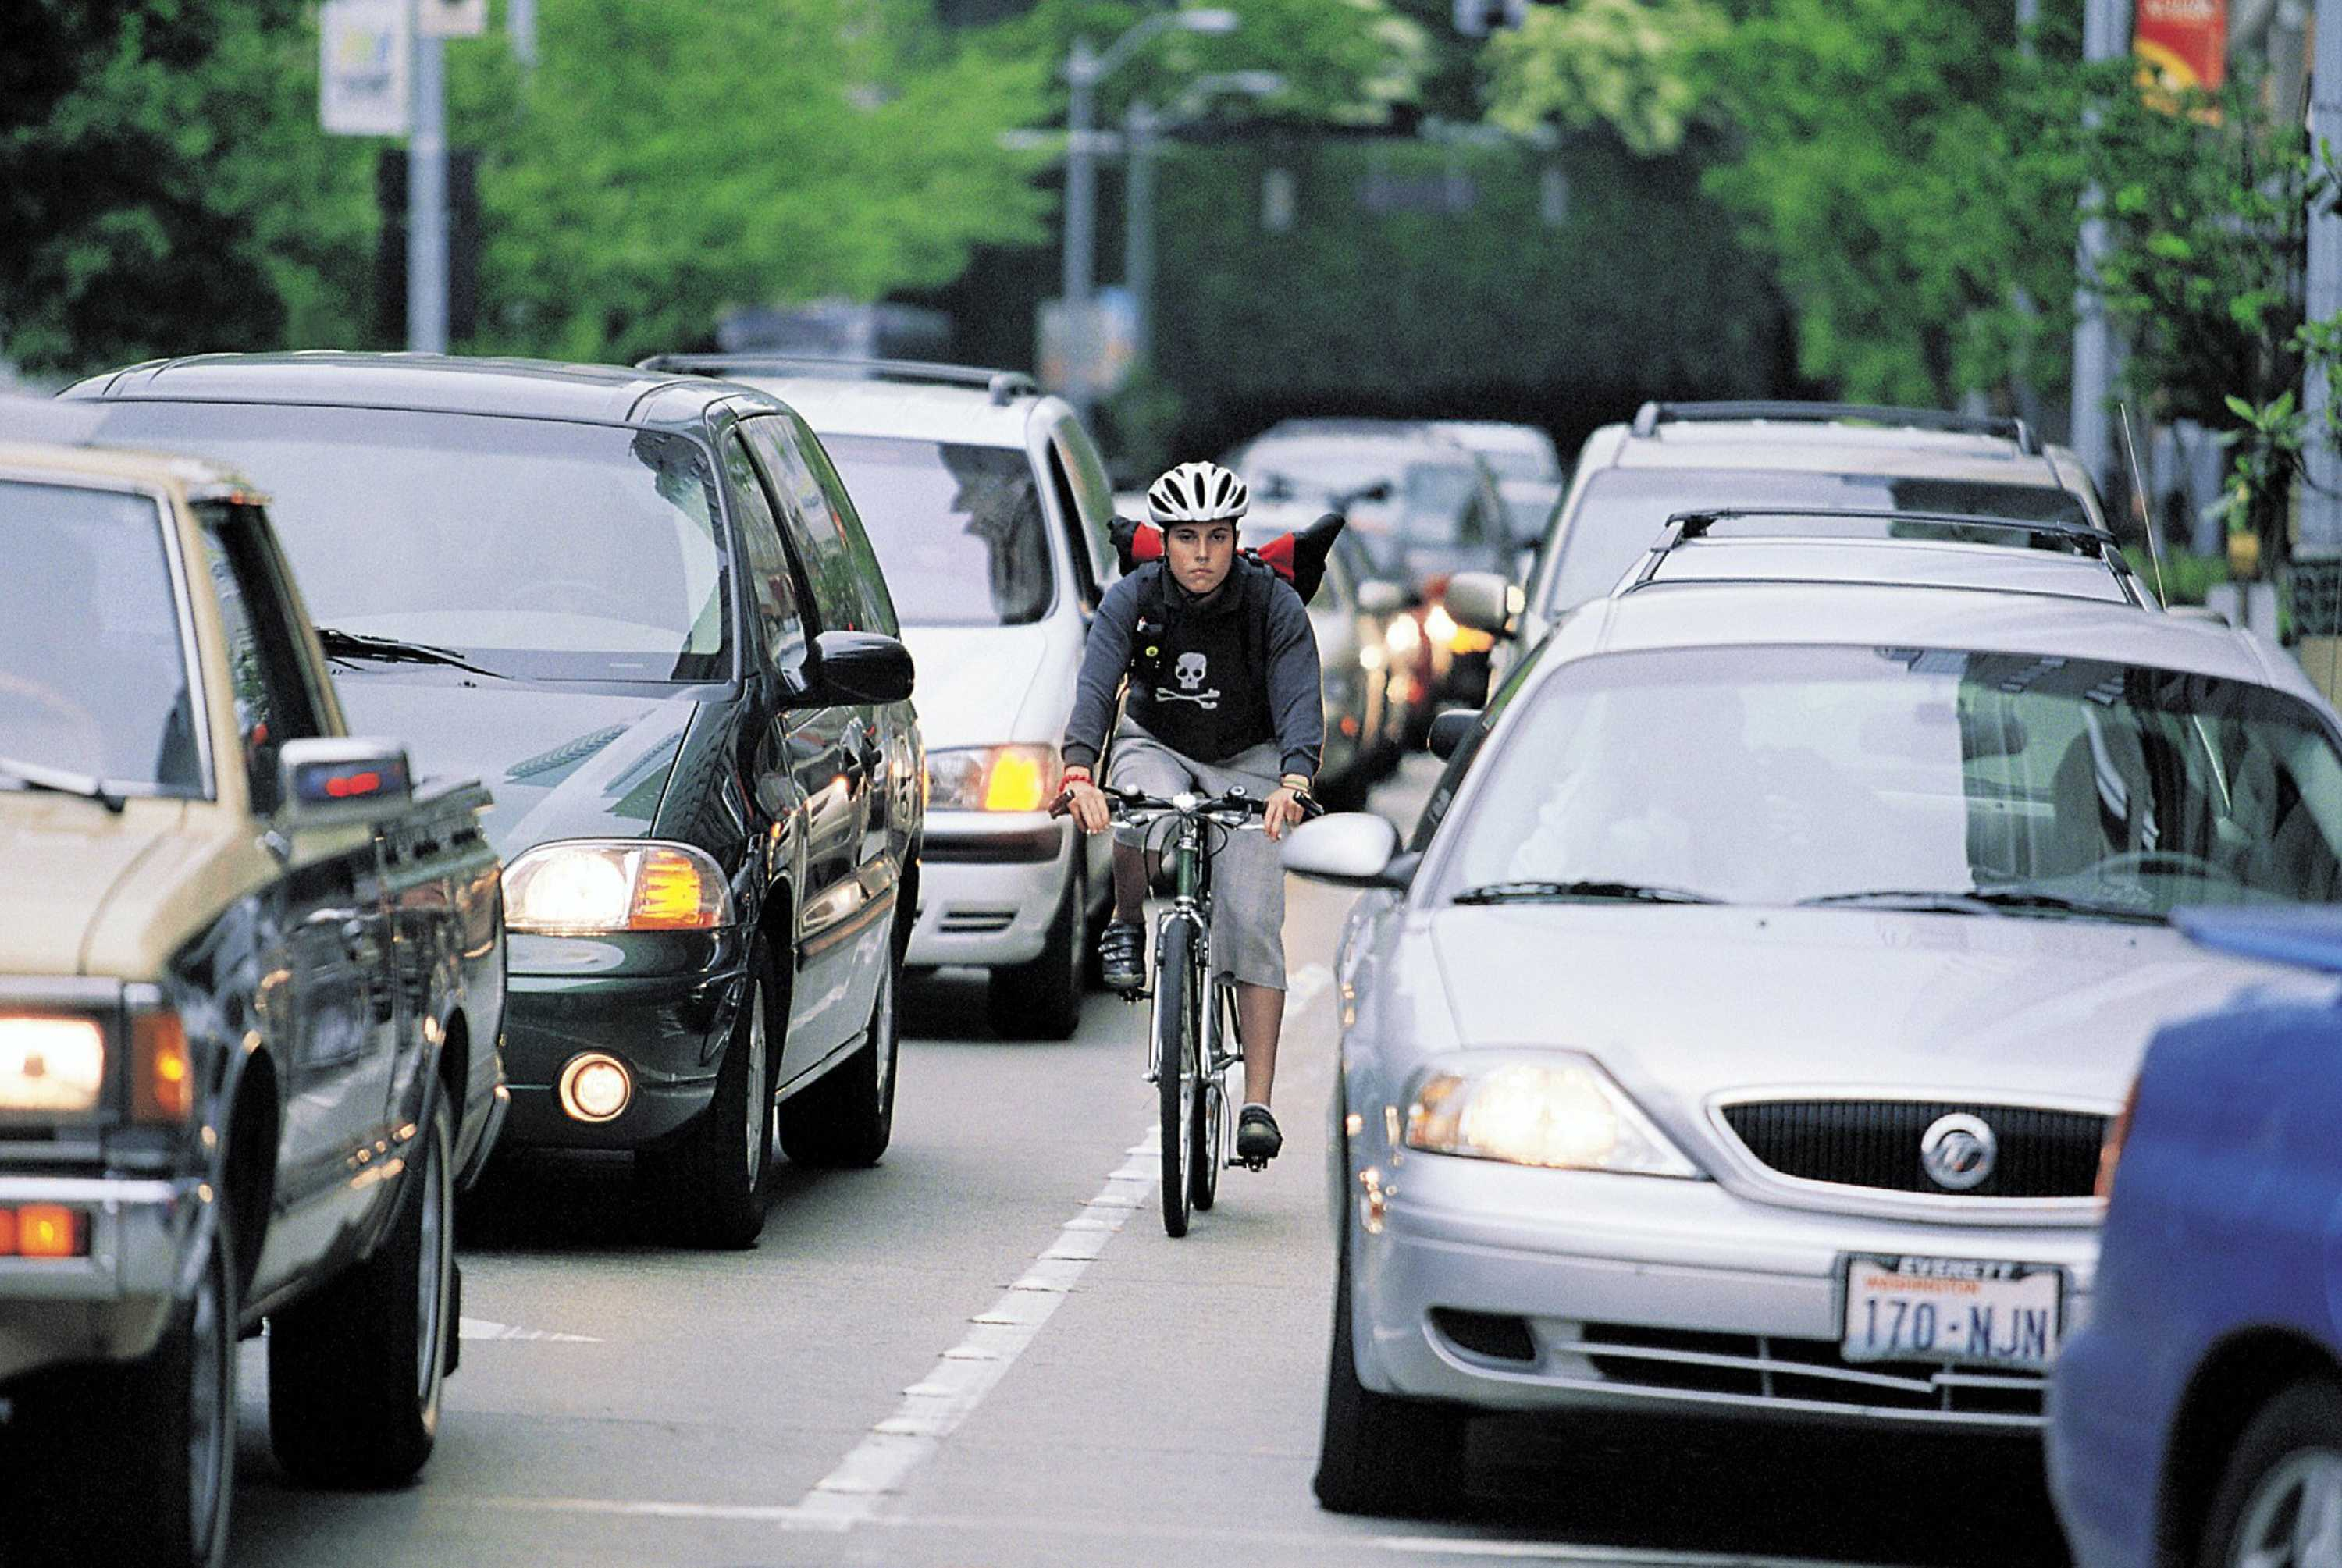 Many outdoor companies in Washington state are attempting to reduce their carbon footprint by encouraging employees to bike to work. (Harley Soltes/Seattle Times/MCT)